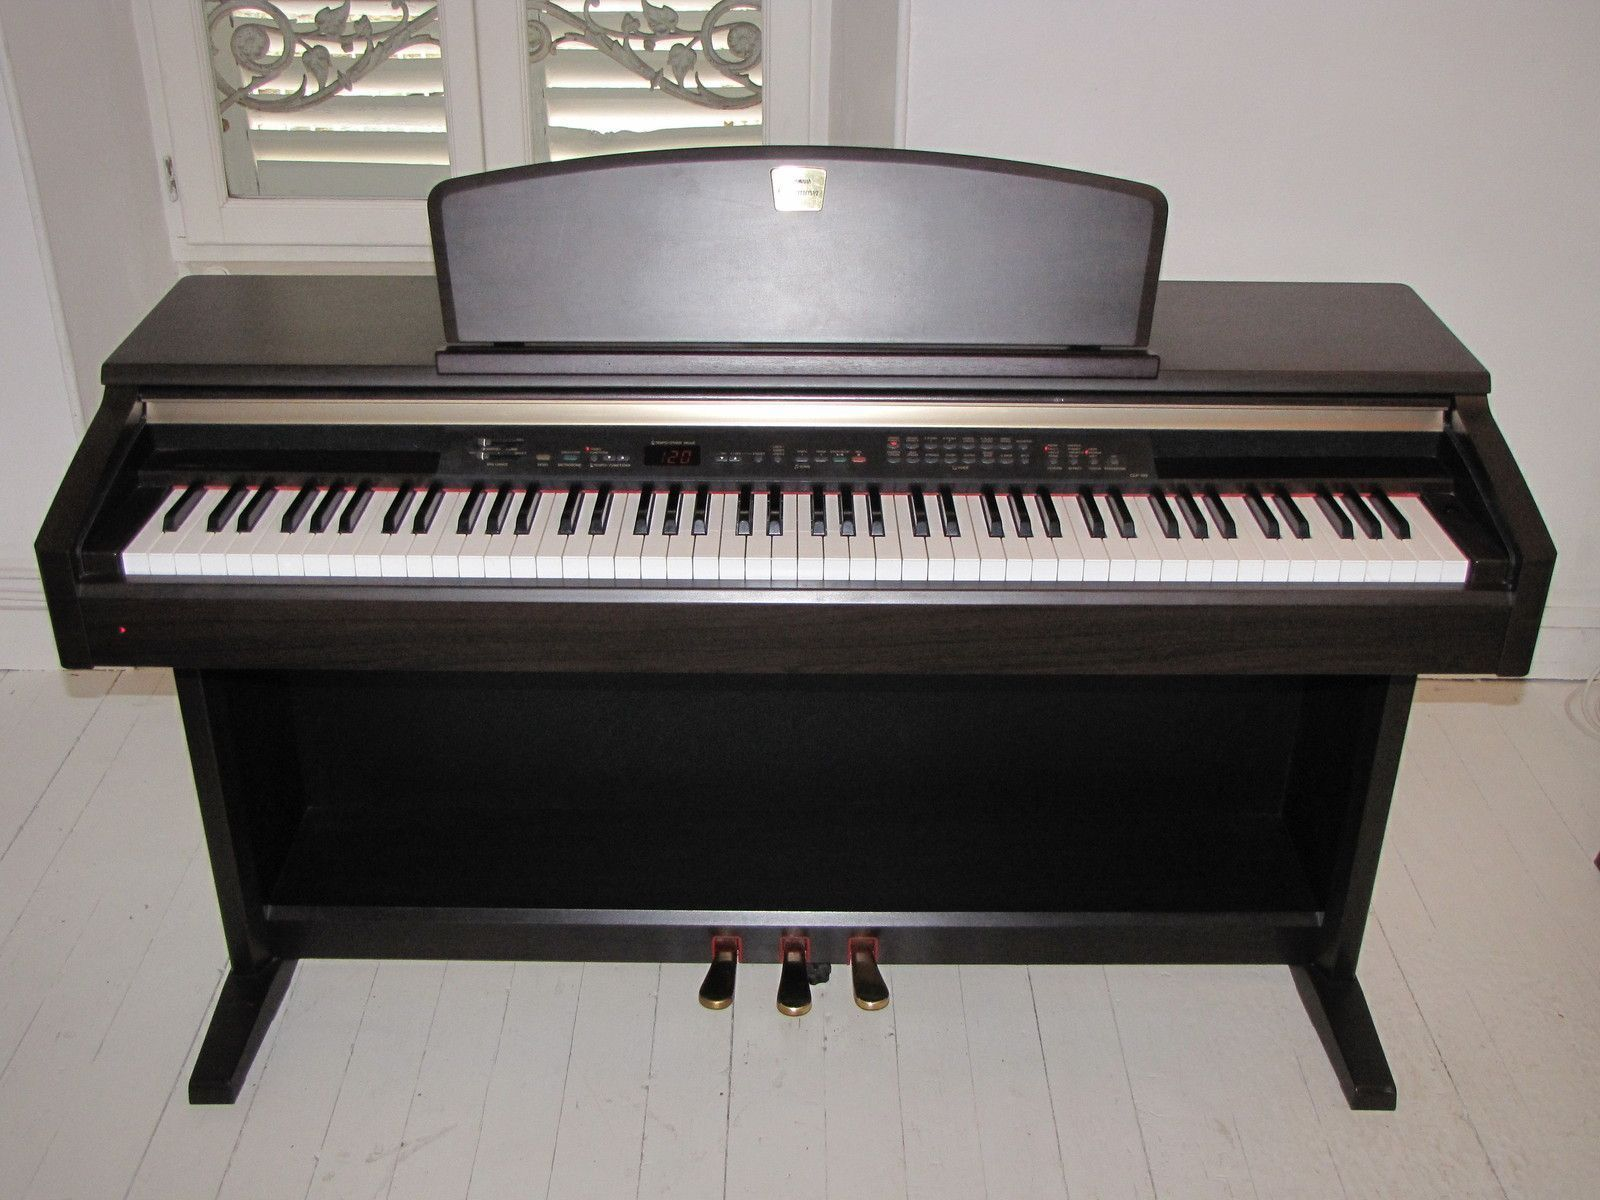 Yamaha clp 130 image 203610 audiofanzine for Yamaha clavinova price list